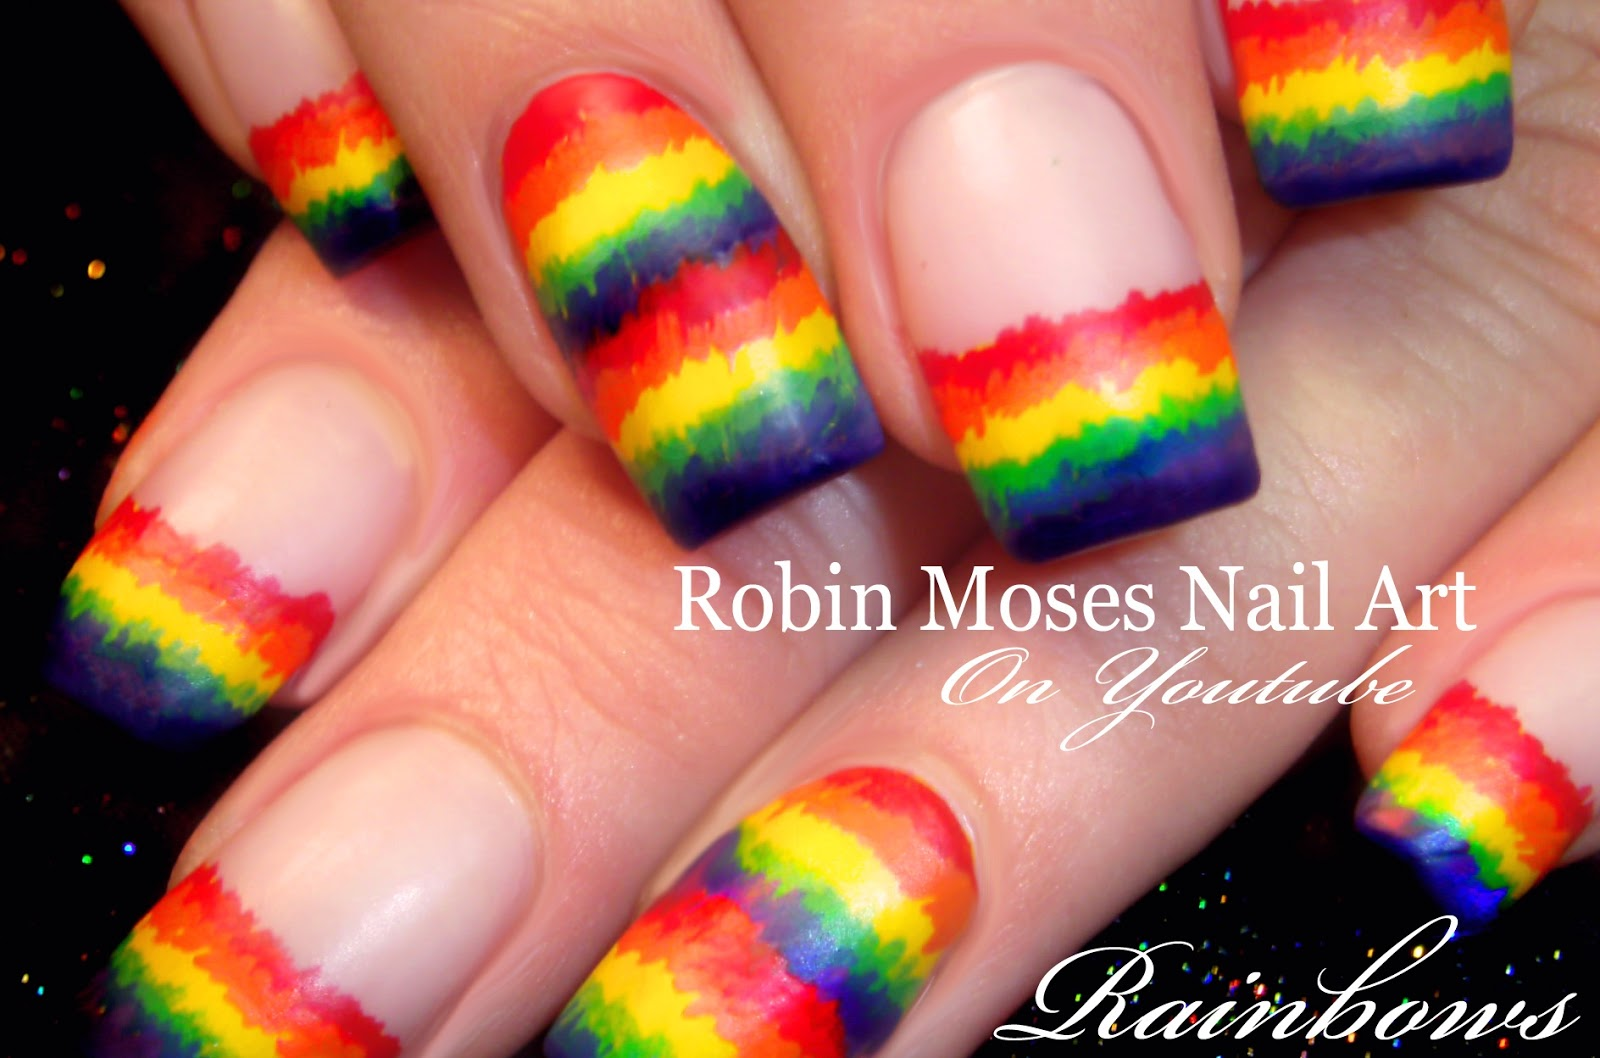 Robin moses nail art easy matte rainbow nails rainbow nails easy matte rainbow nails rainbow nails matte nails easy matte nails easy st paddy nails st paddys nails st patricks day nails prinsesfo Gallery